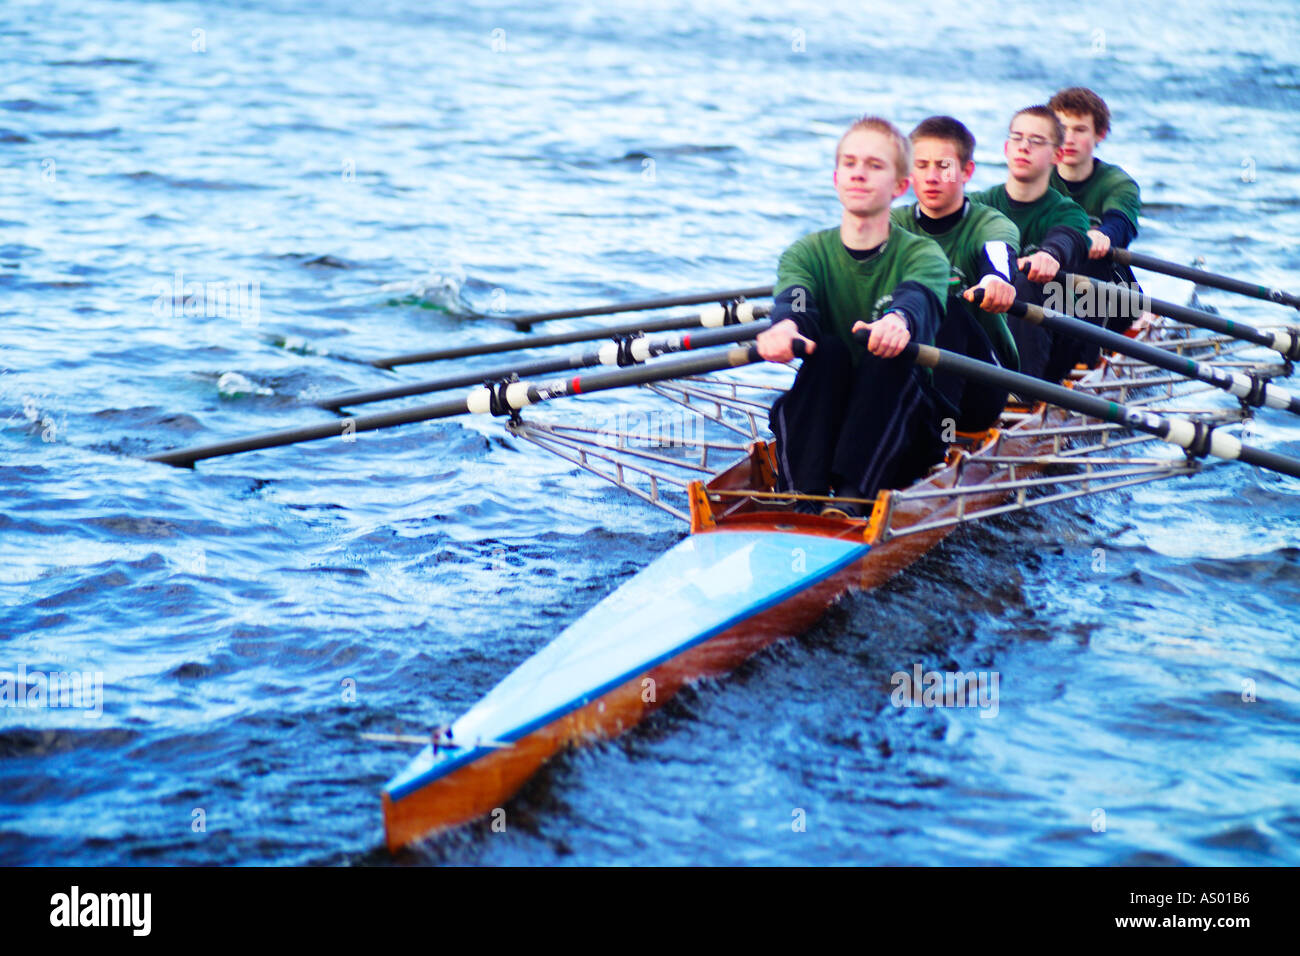 a four man rowing boat - Stock Image